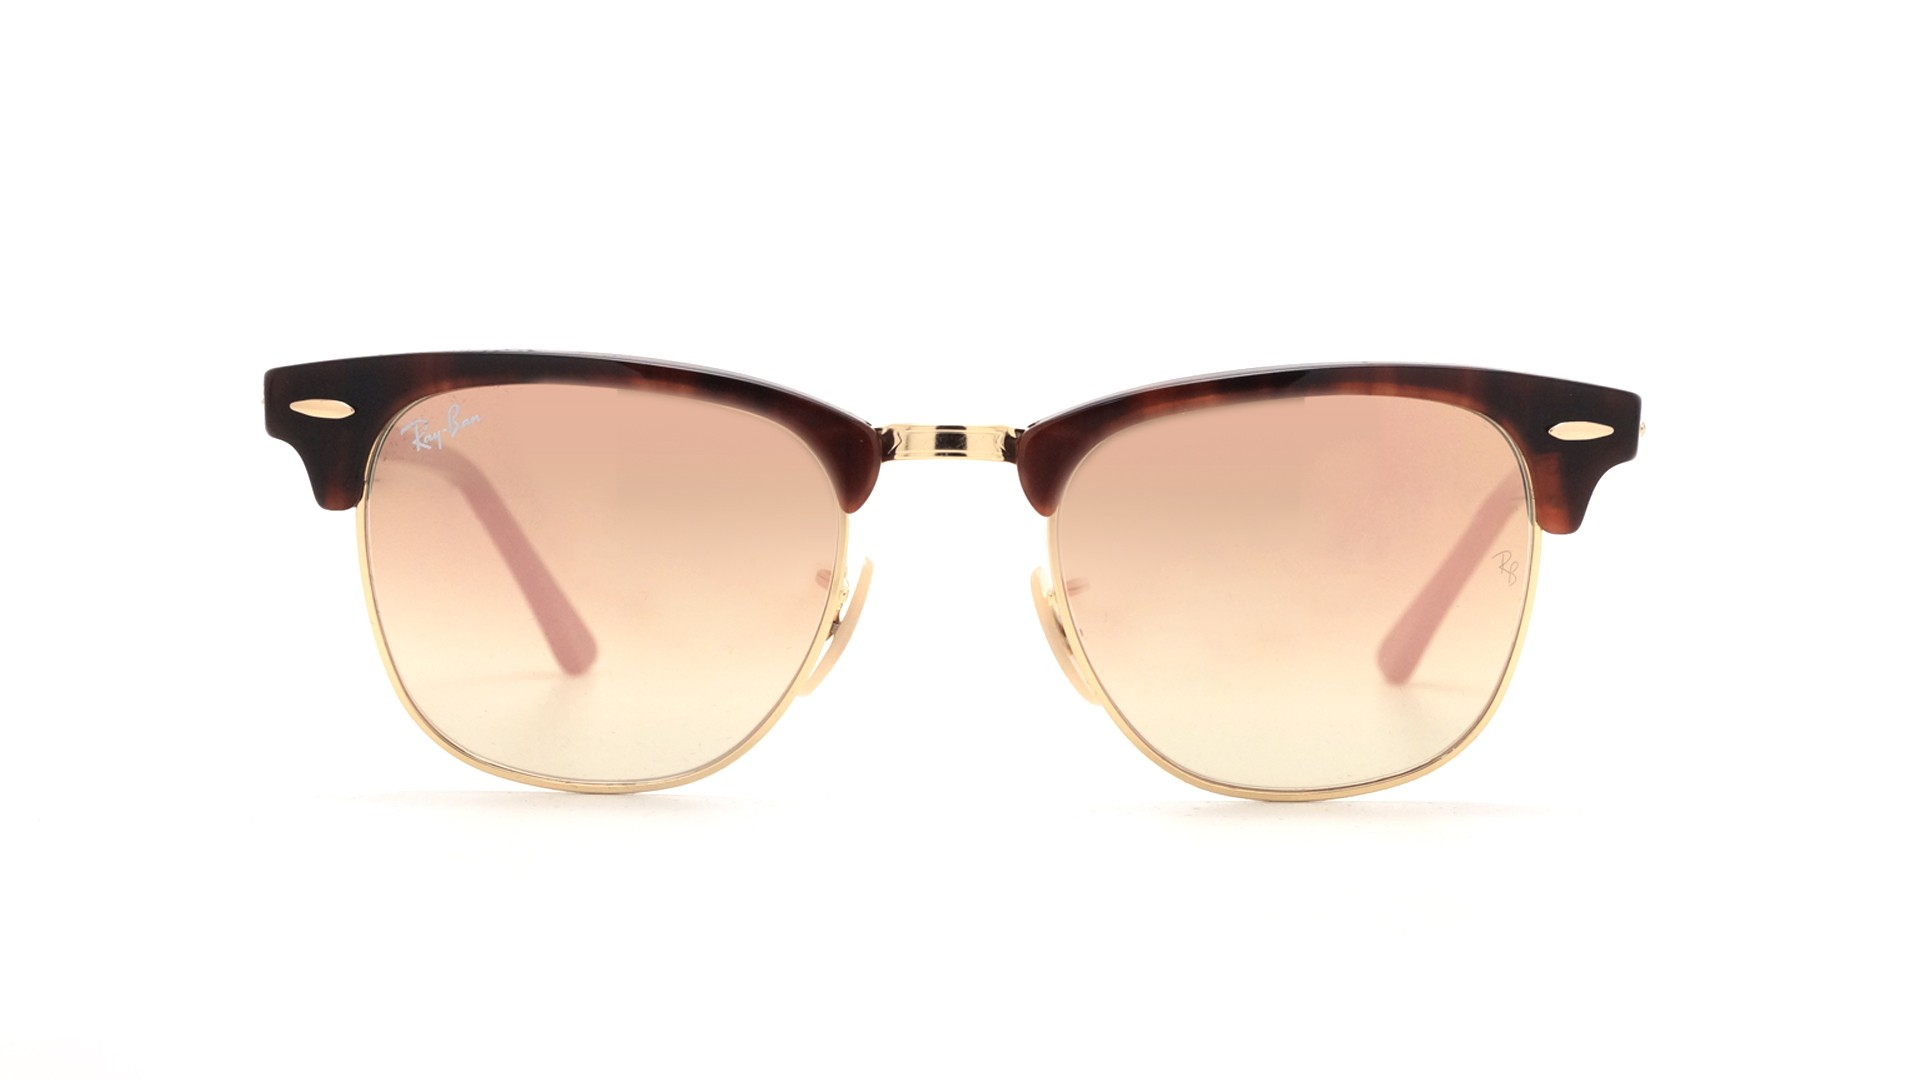 clubmaster classic tortoise  Ban Clubmaster Tortoise RB3016 990/7O 49-21 Degraded